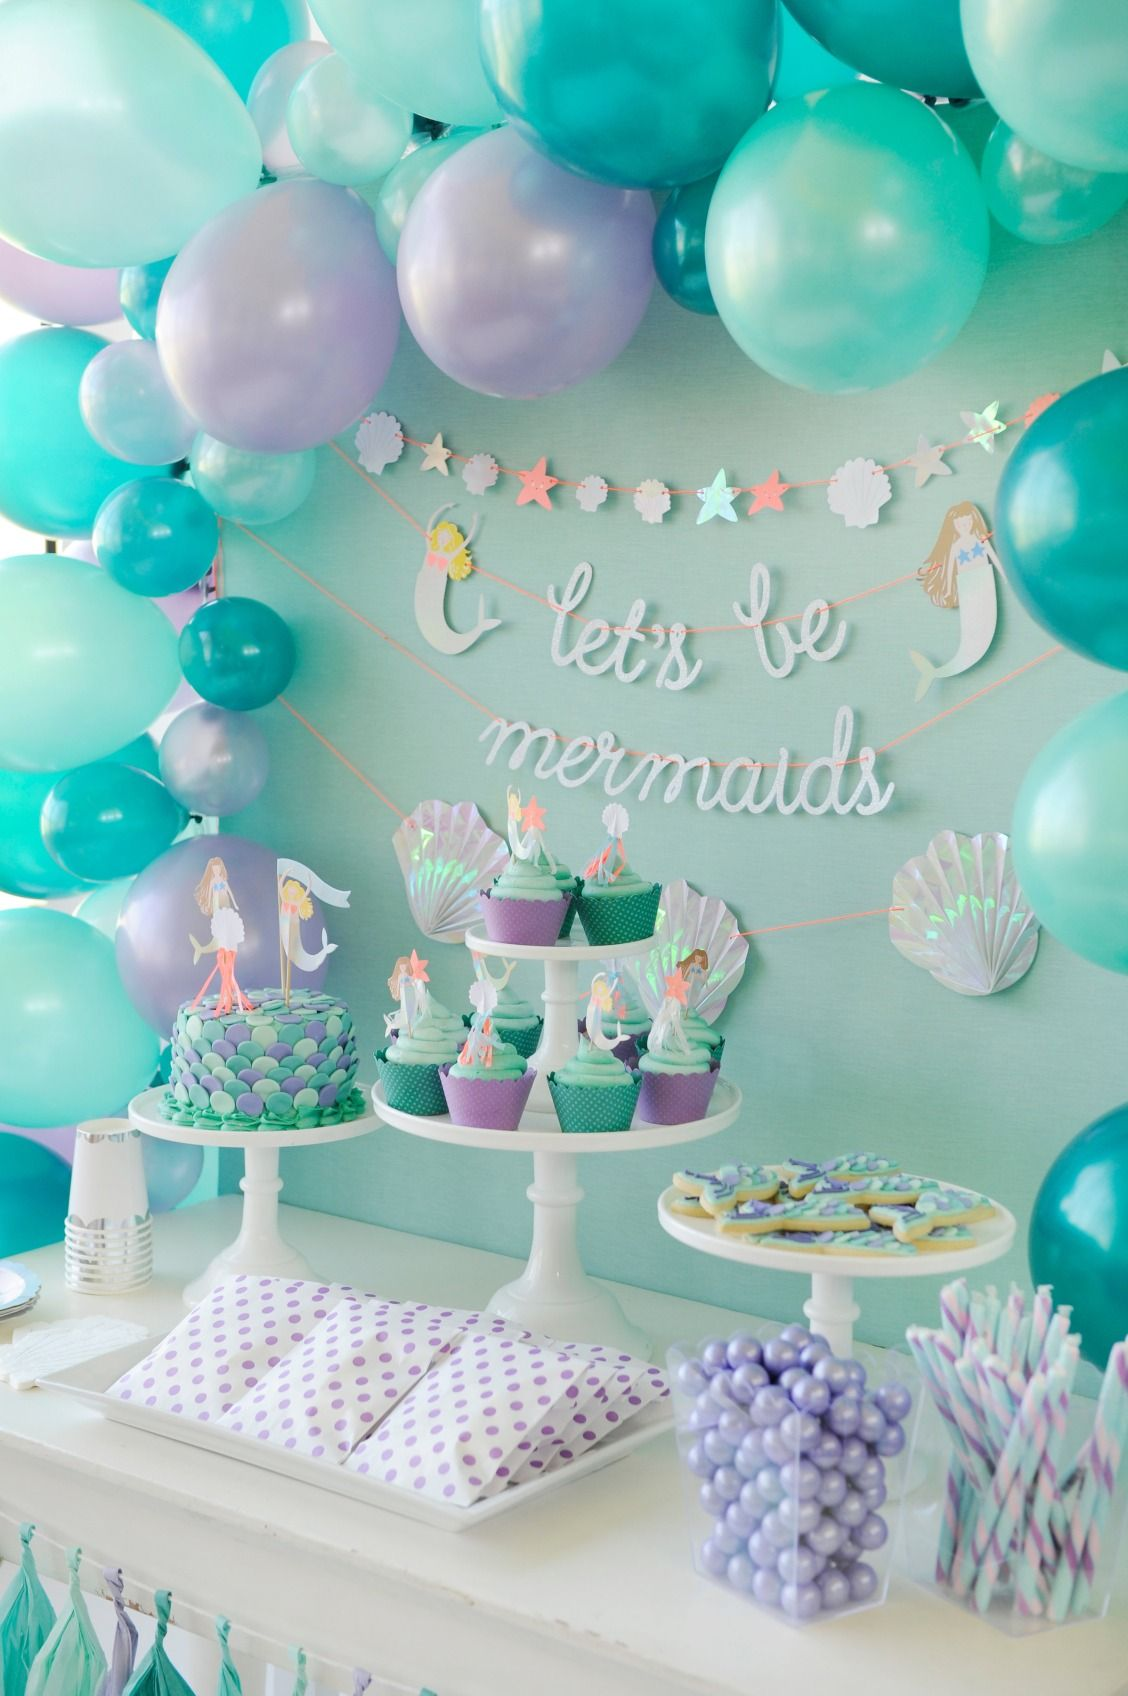 Mermaid Themed Childrens Birthday Party Dessert Table Cake Cupcakes Cookies And Candy Decorated With Turquoise Purple Balloons Tassels